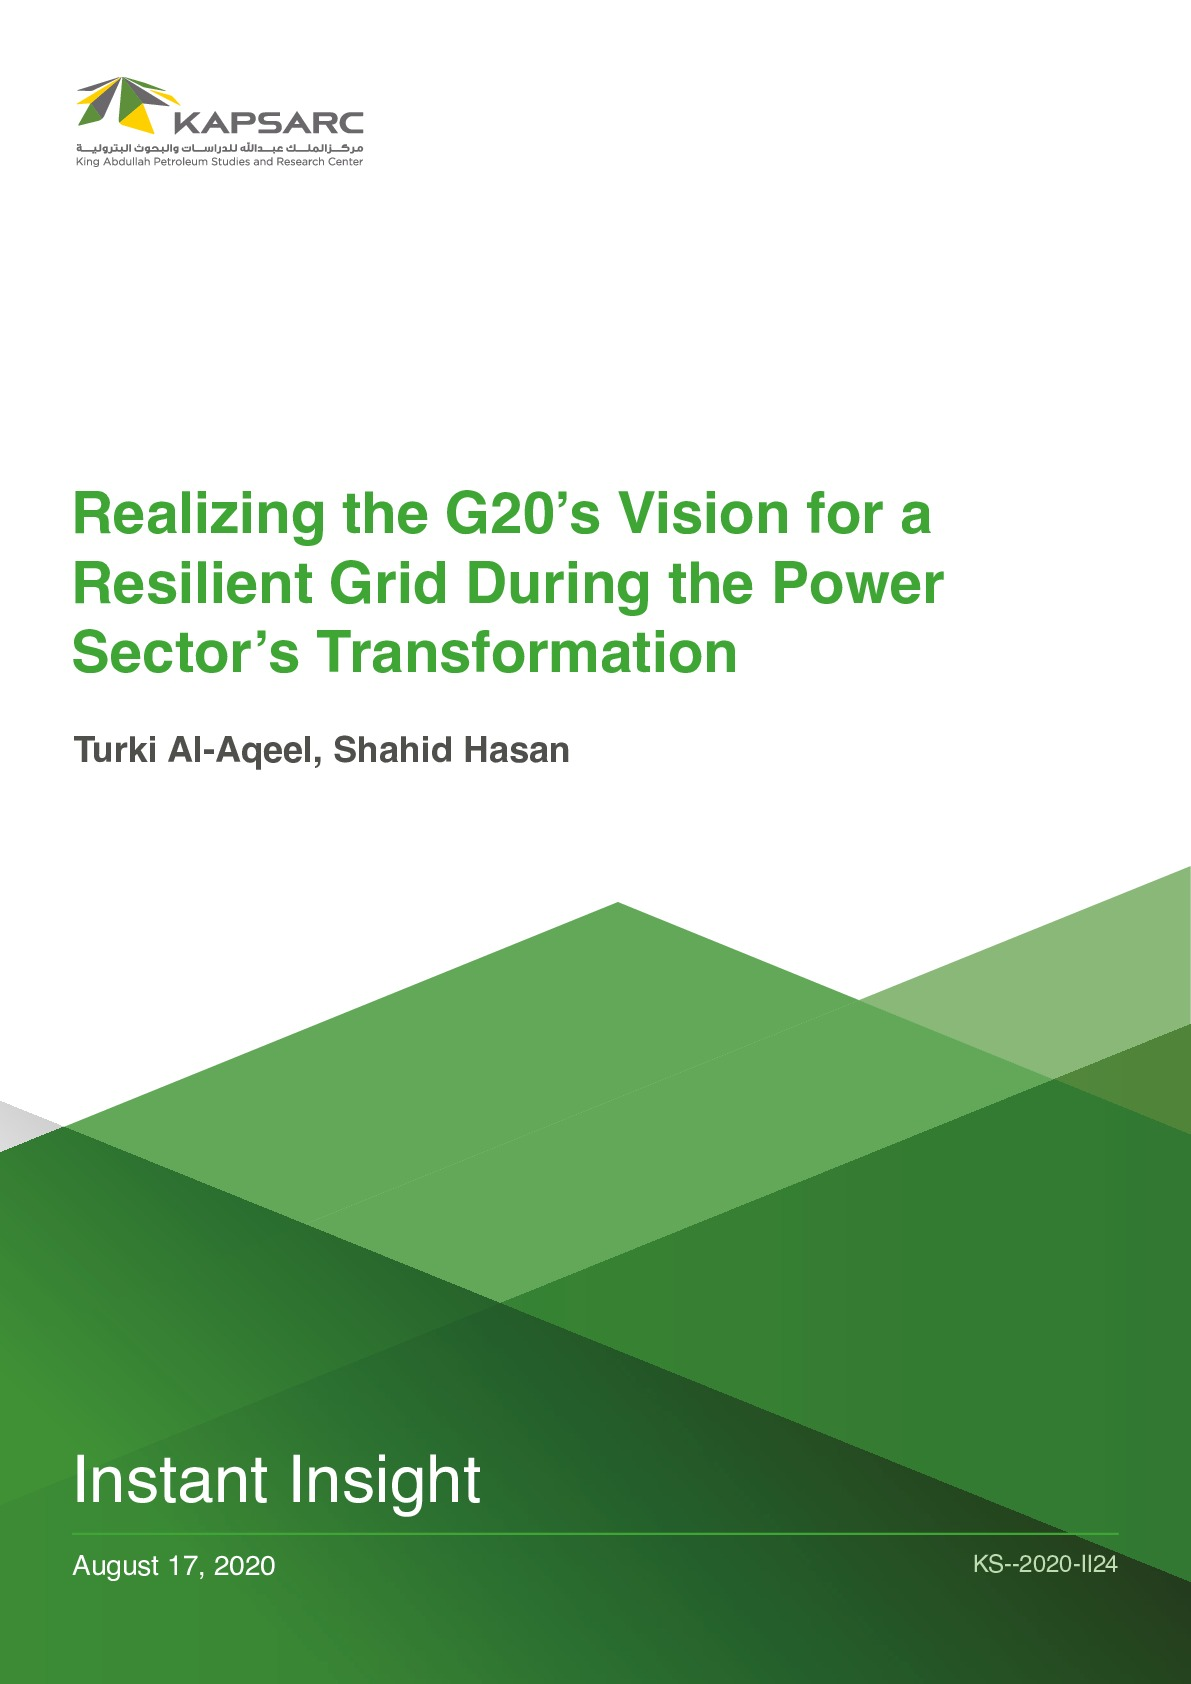 Realizing the G20's Vision for a Resilient Grid During the Power Sector's Transformation